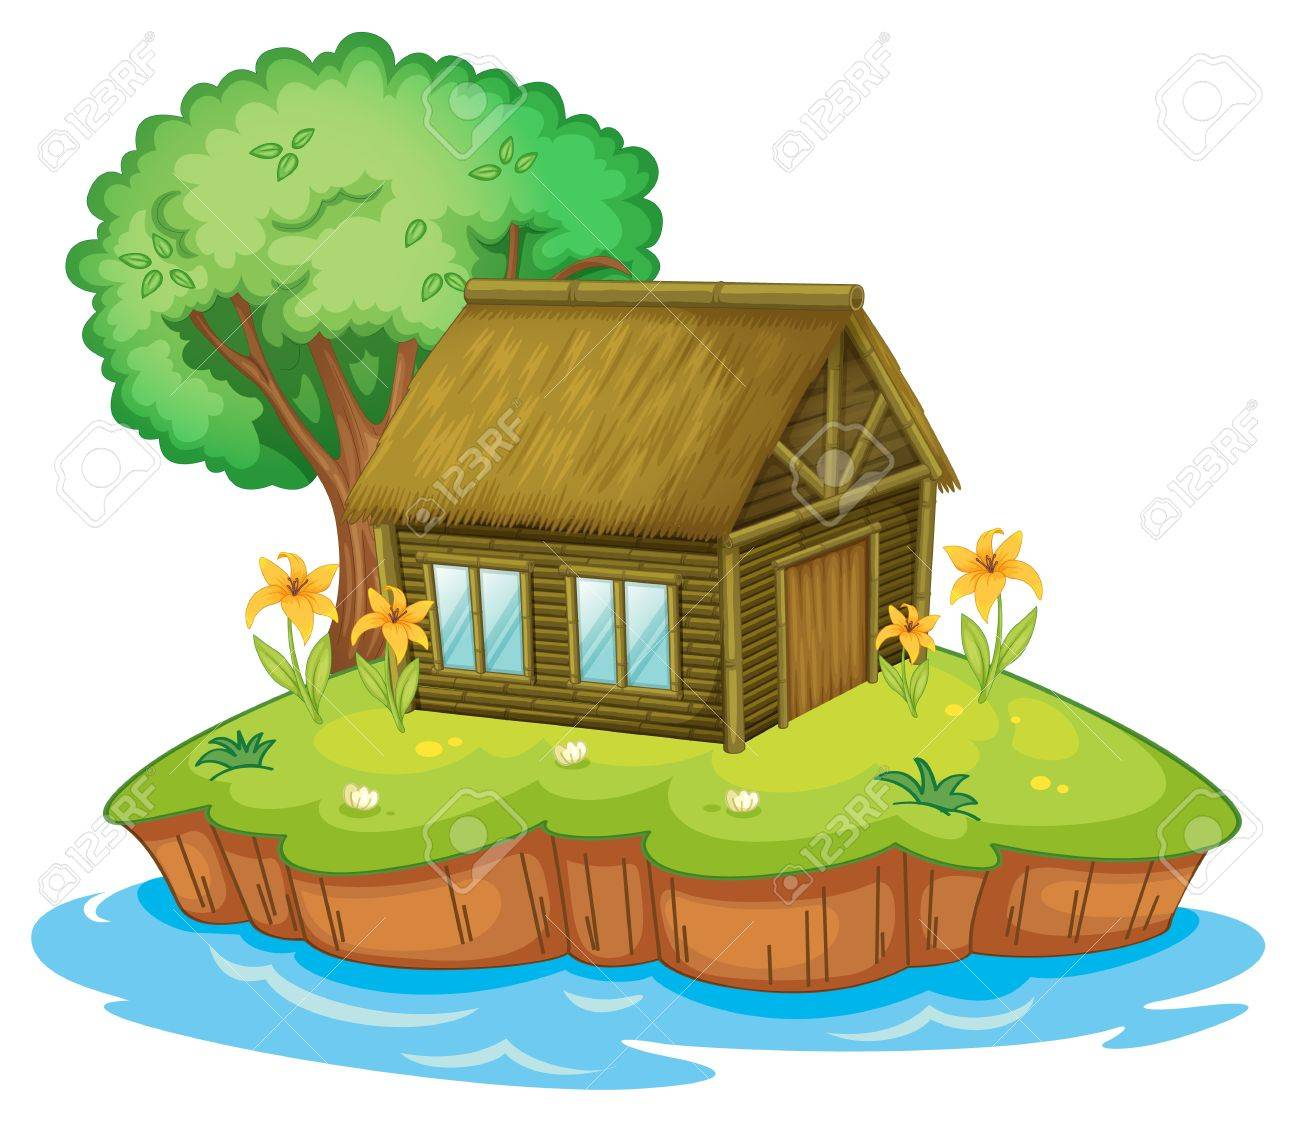 Illustration of a hut on an island Stock Vector - 13930806